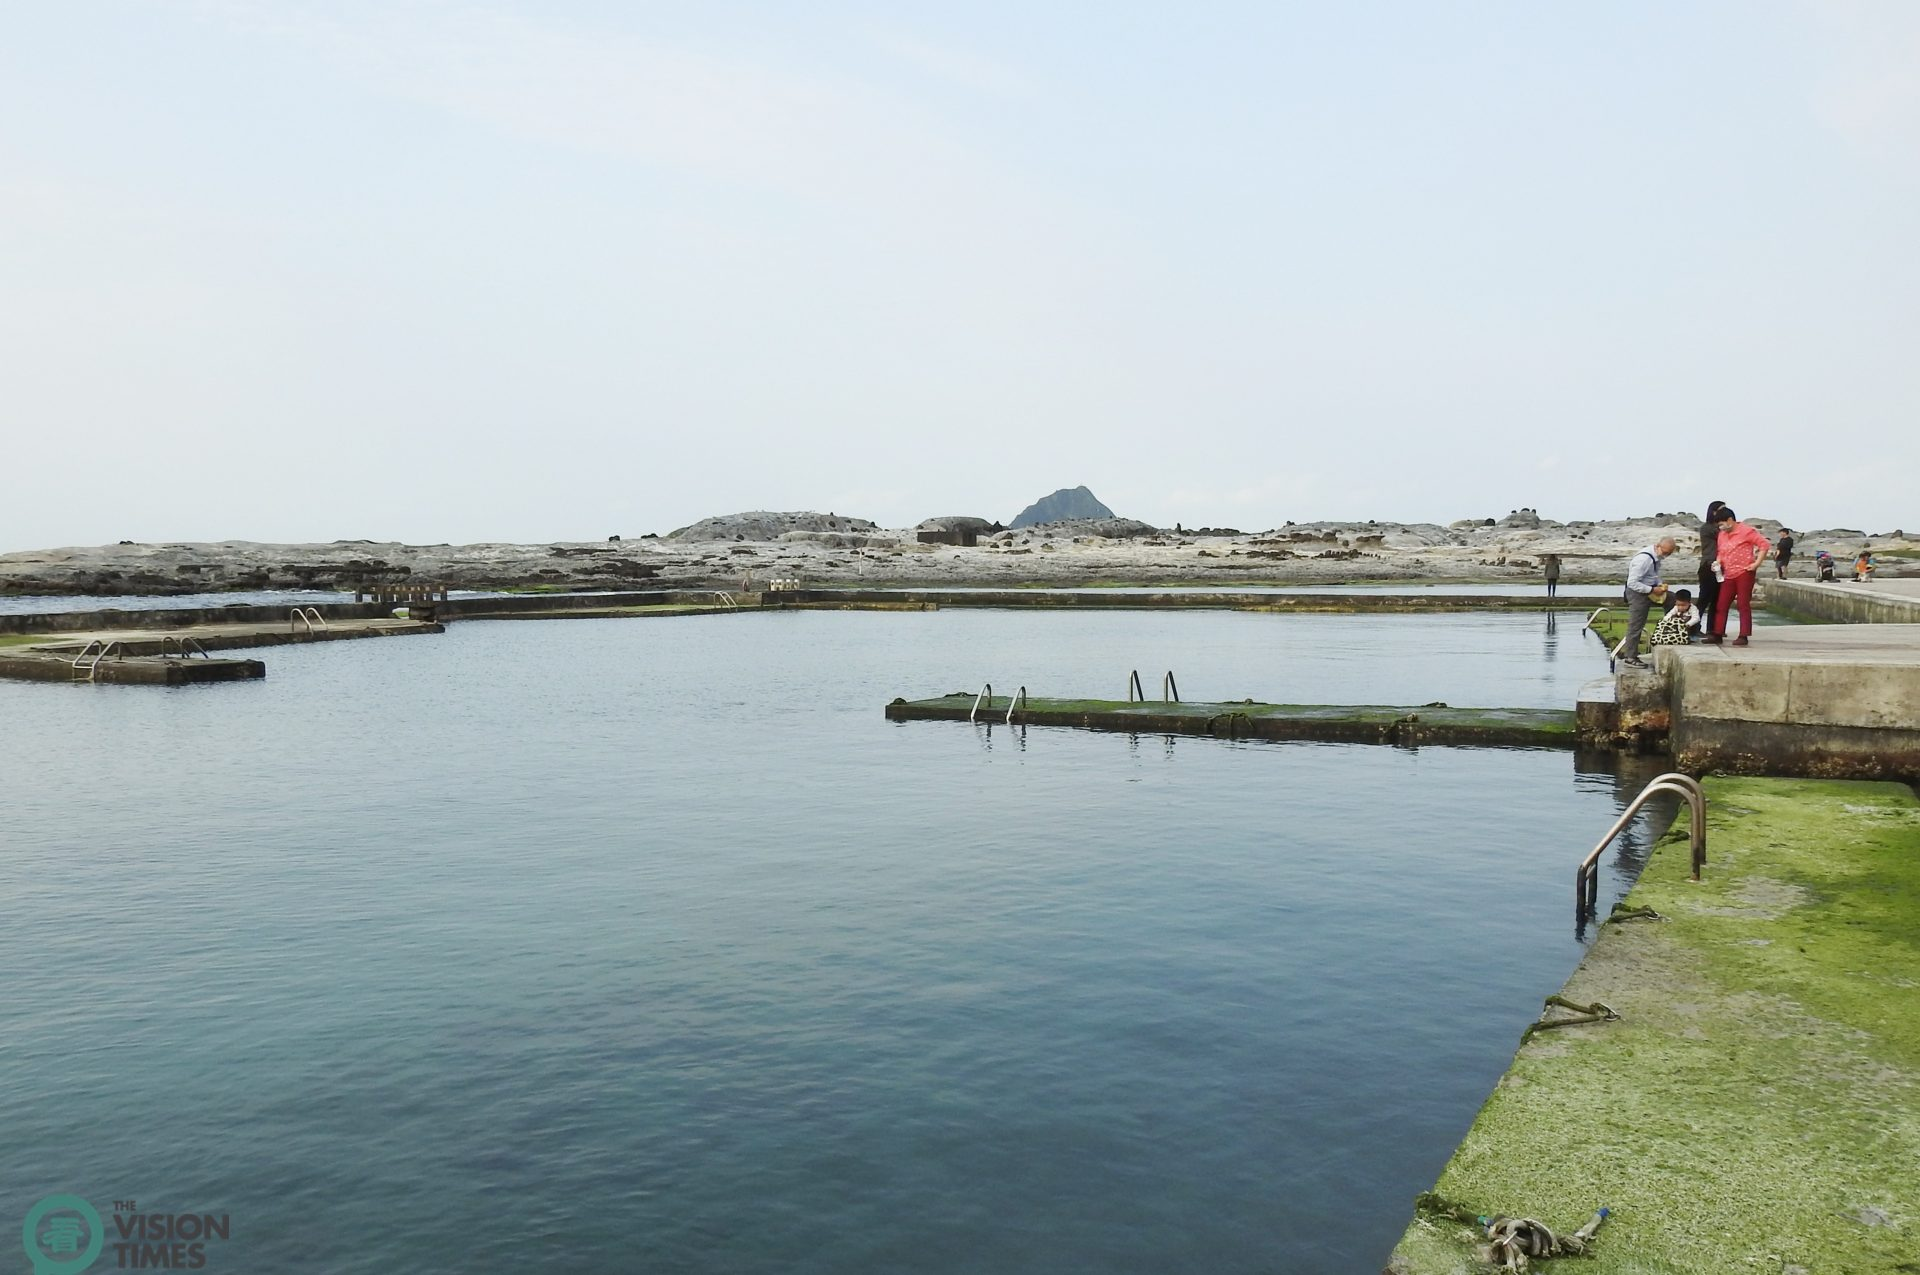 There are two small abalone fields-transformed swimming pools next to the ocean. (Image: Billy Shyu / Vision Times)